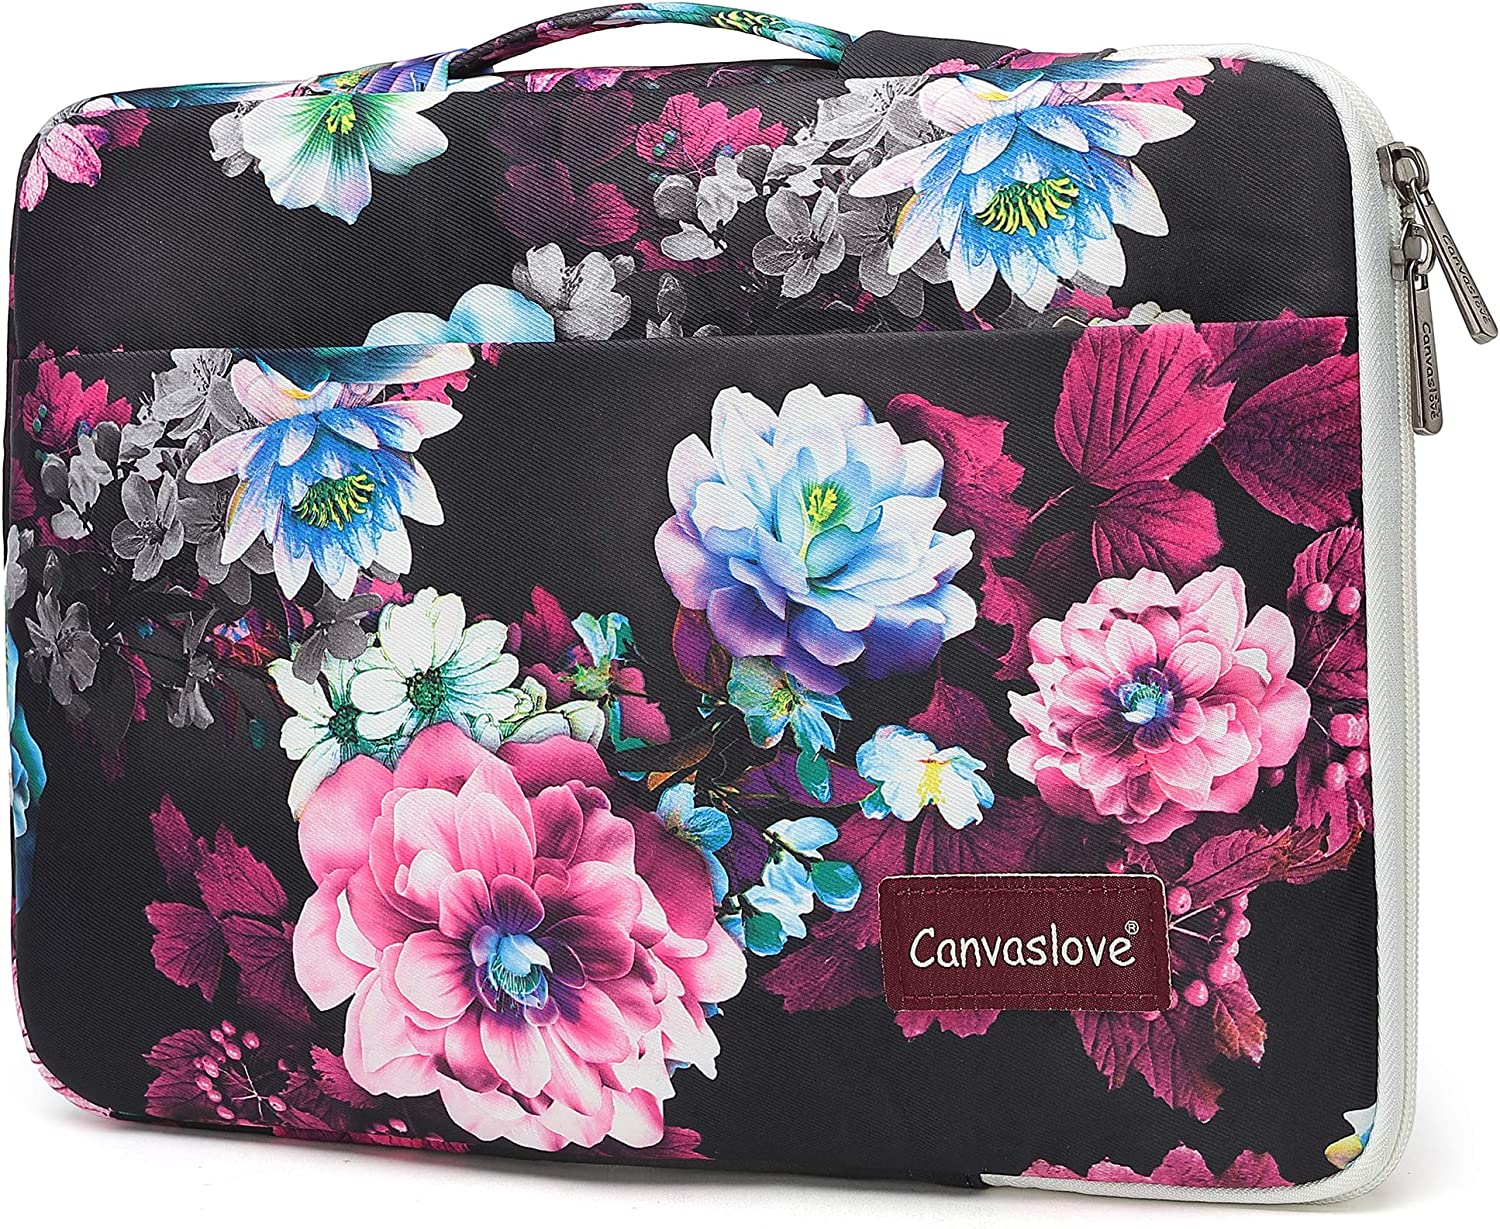 Canvaslove Color Lotus Conner Bottom Rebound Bubble Protection Waterproof Laptop Sleeve Case with Handle and Pockets for 14 inch Laptop